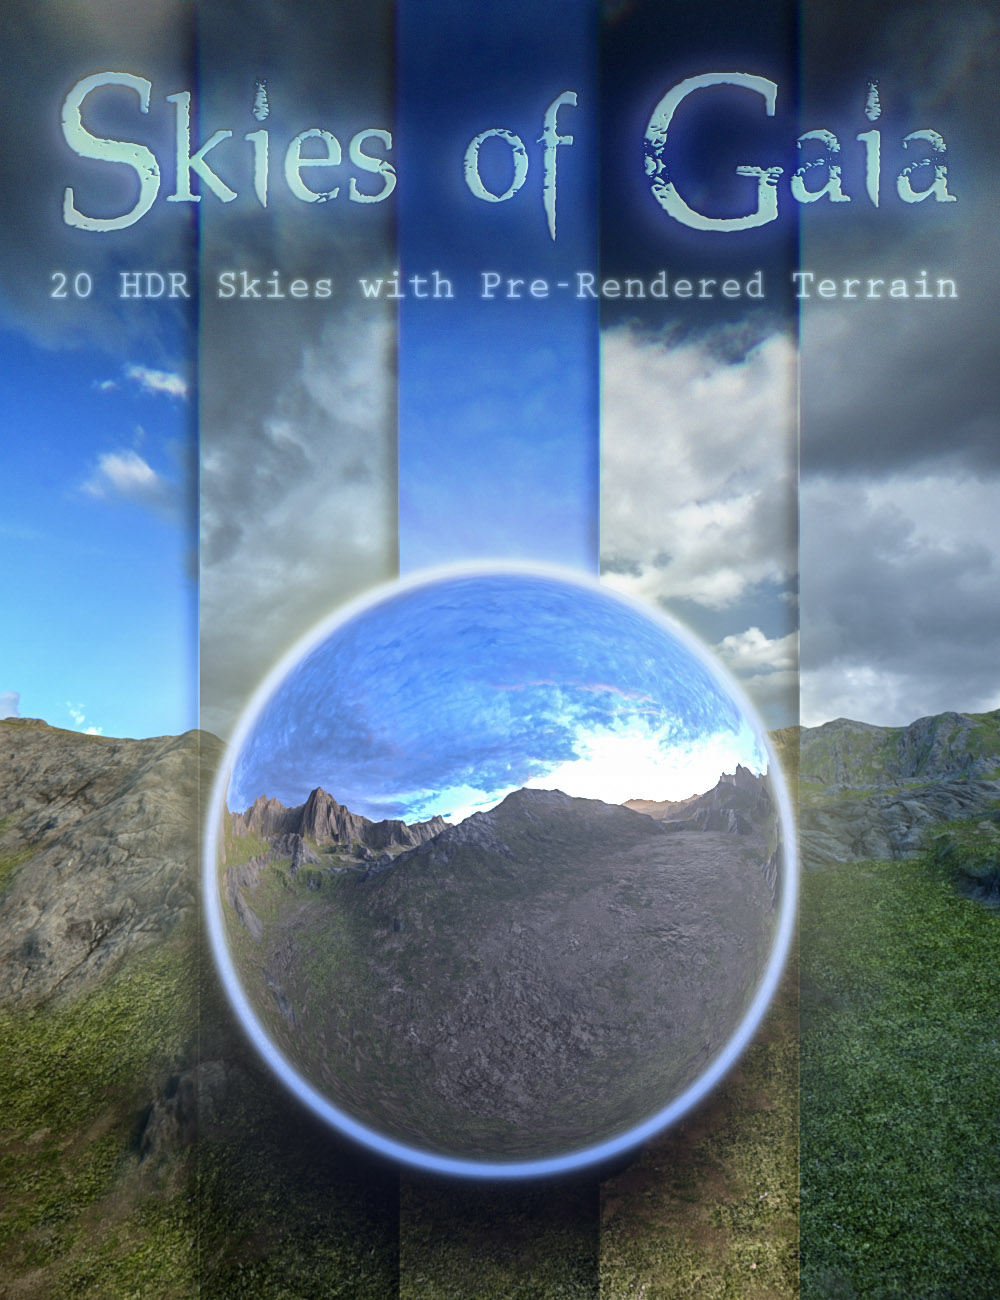 Skies of Gaia - 20 8k HDRI Skies with Pre-Rendered Terrain for Iray by: DimensionTheory, 3D Models by Daz 3D